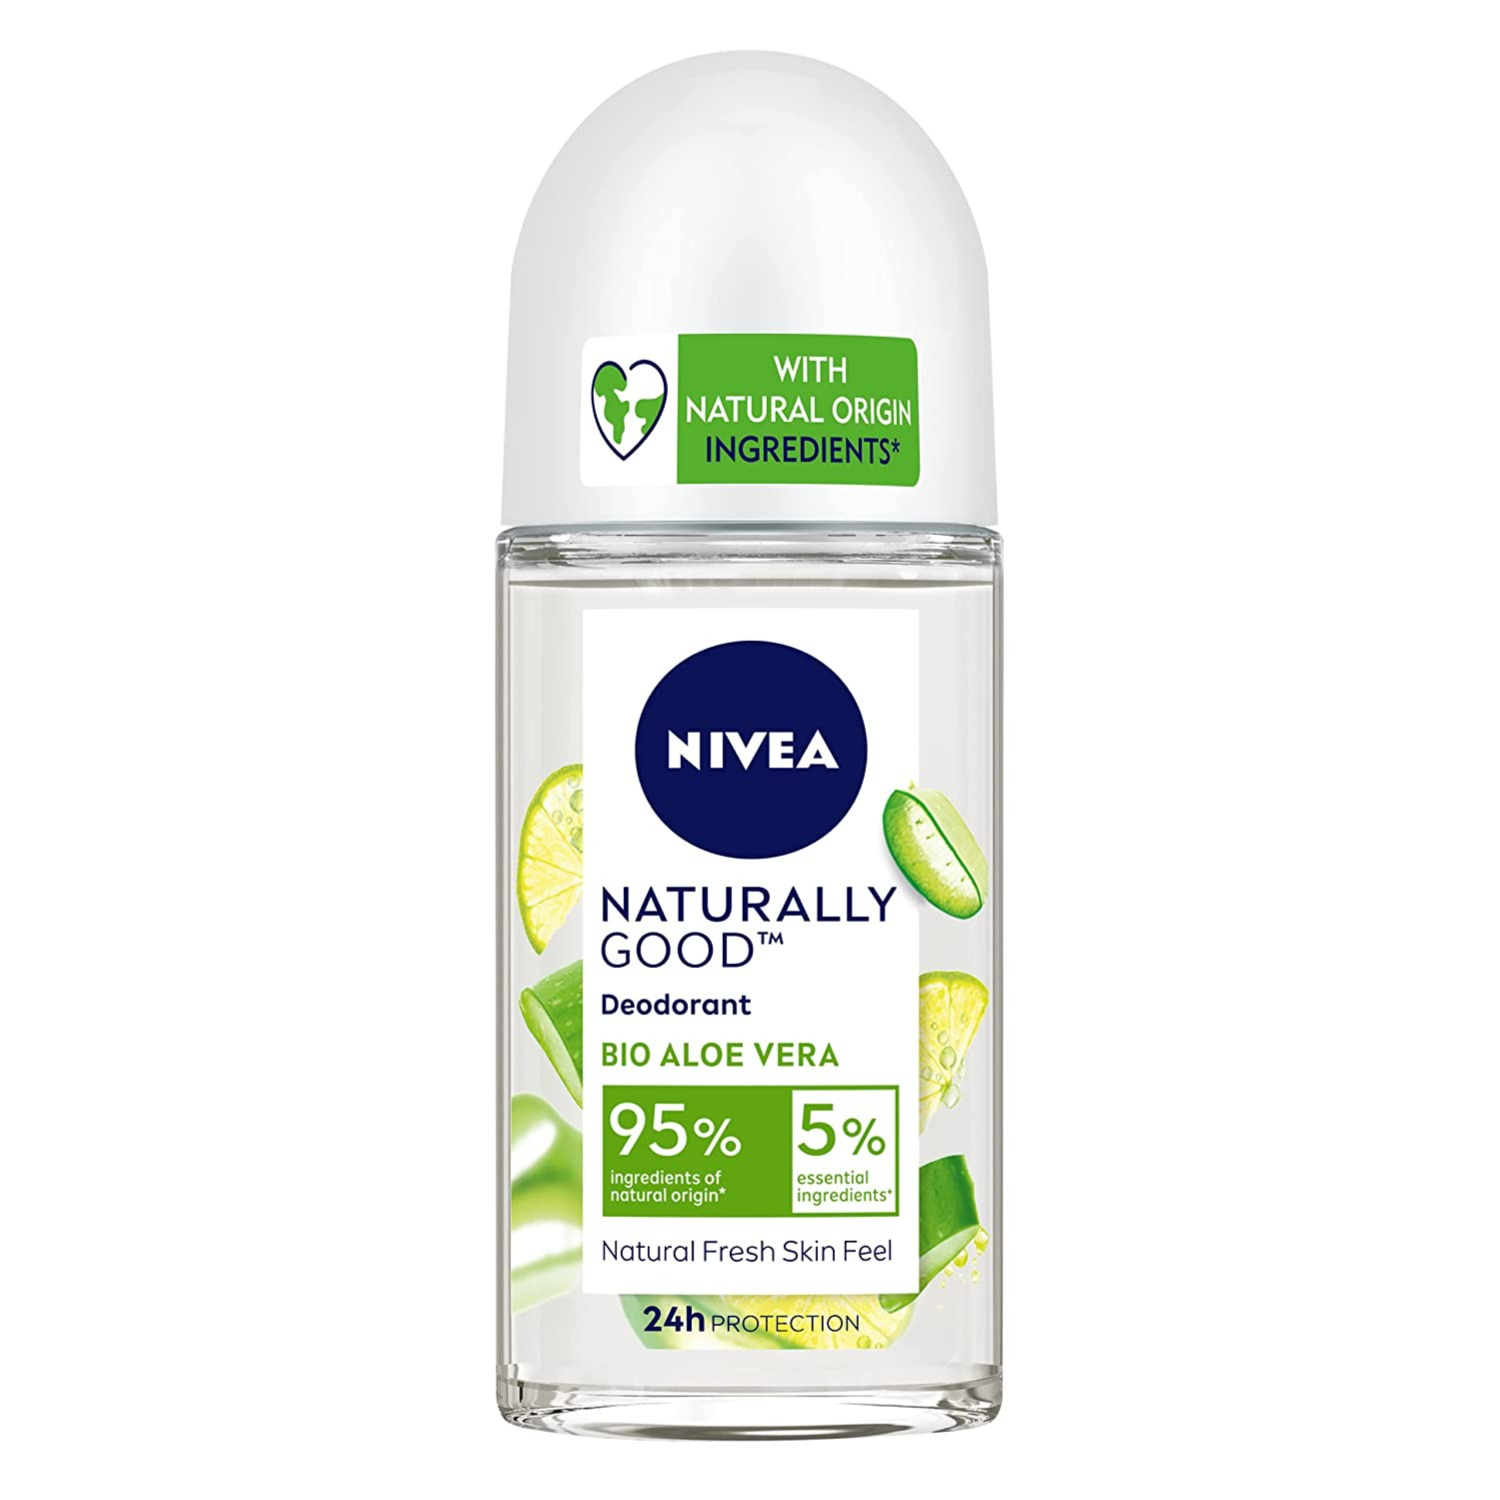 Buy NIVEA Naturally Good Deodorant Roll On, Bio Aloe Vera, 50 ml Online at Low Prices in India - Amazon.in